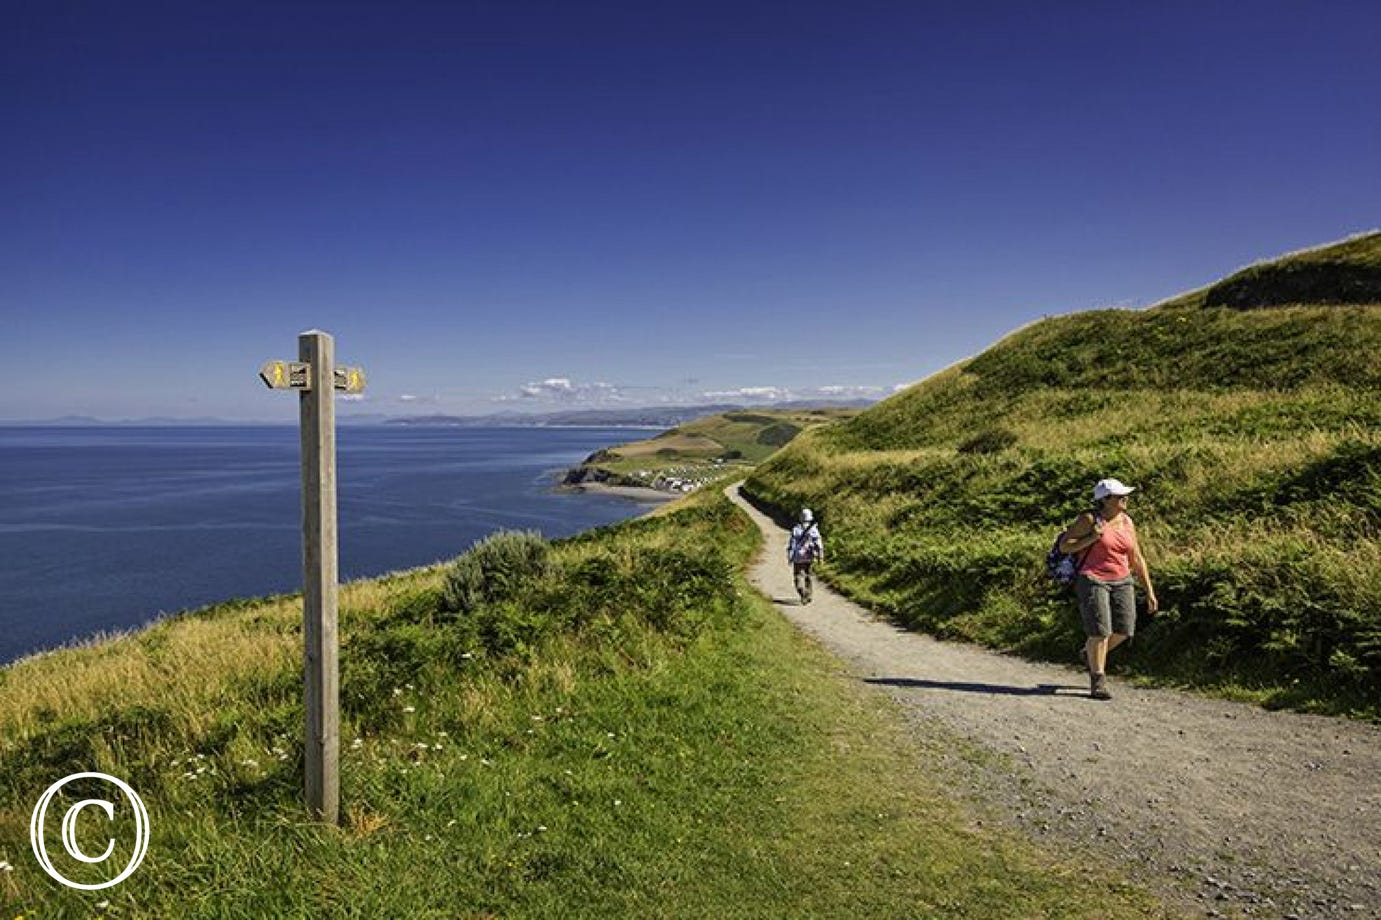 The All Wales Coast Path can be joined at Tre'r Ddol, 1 mile from the cottage